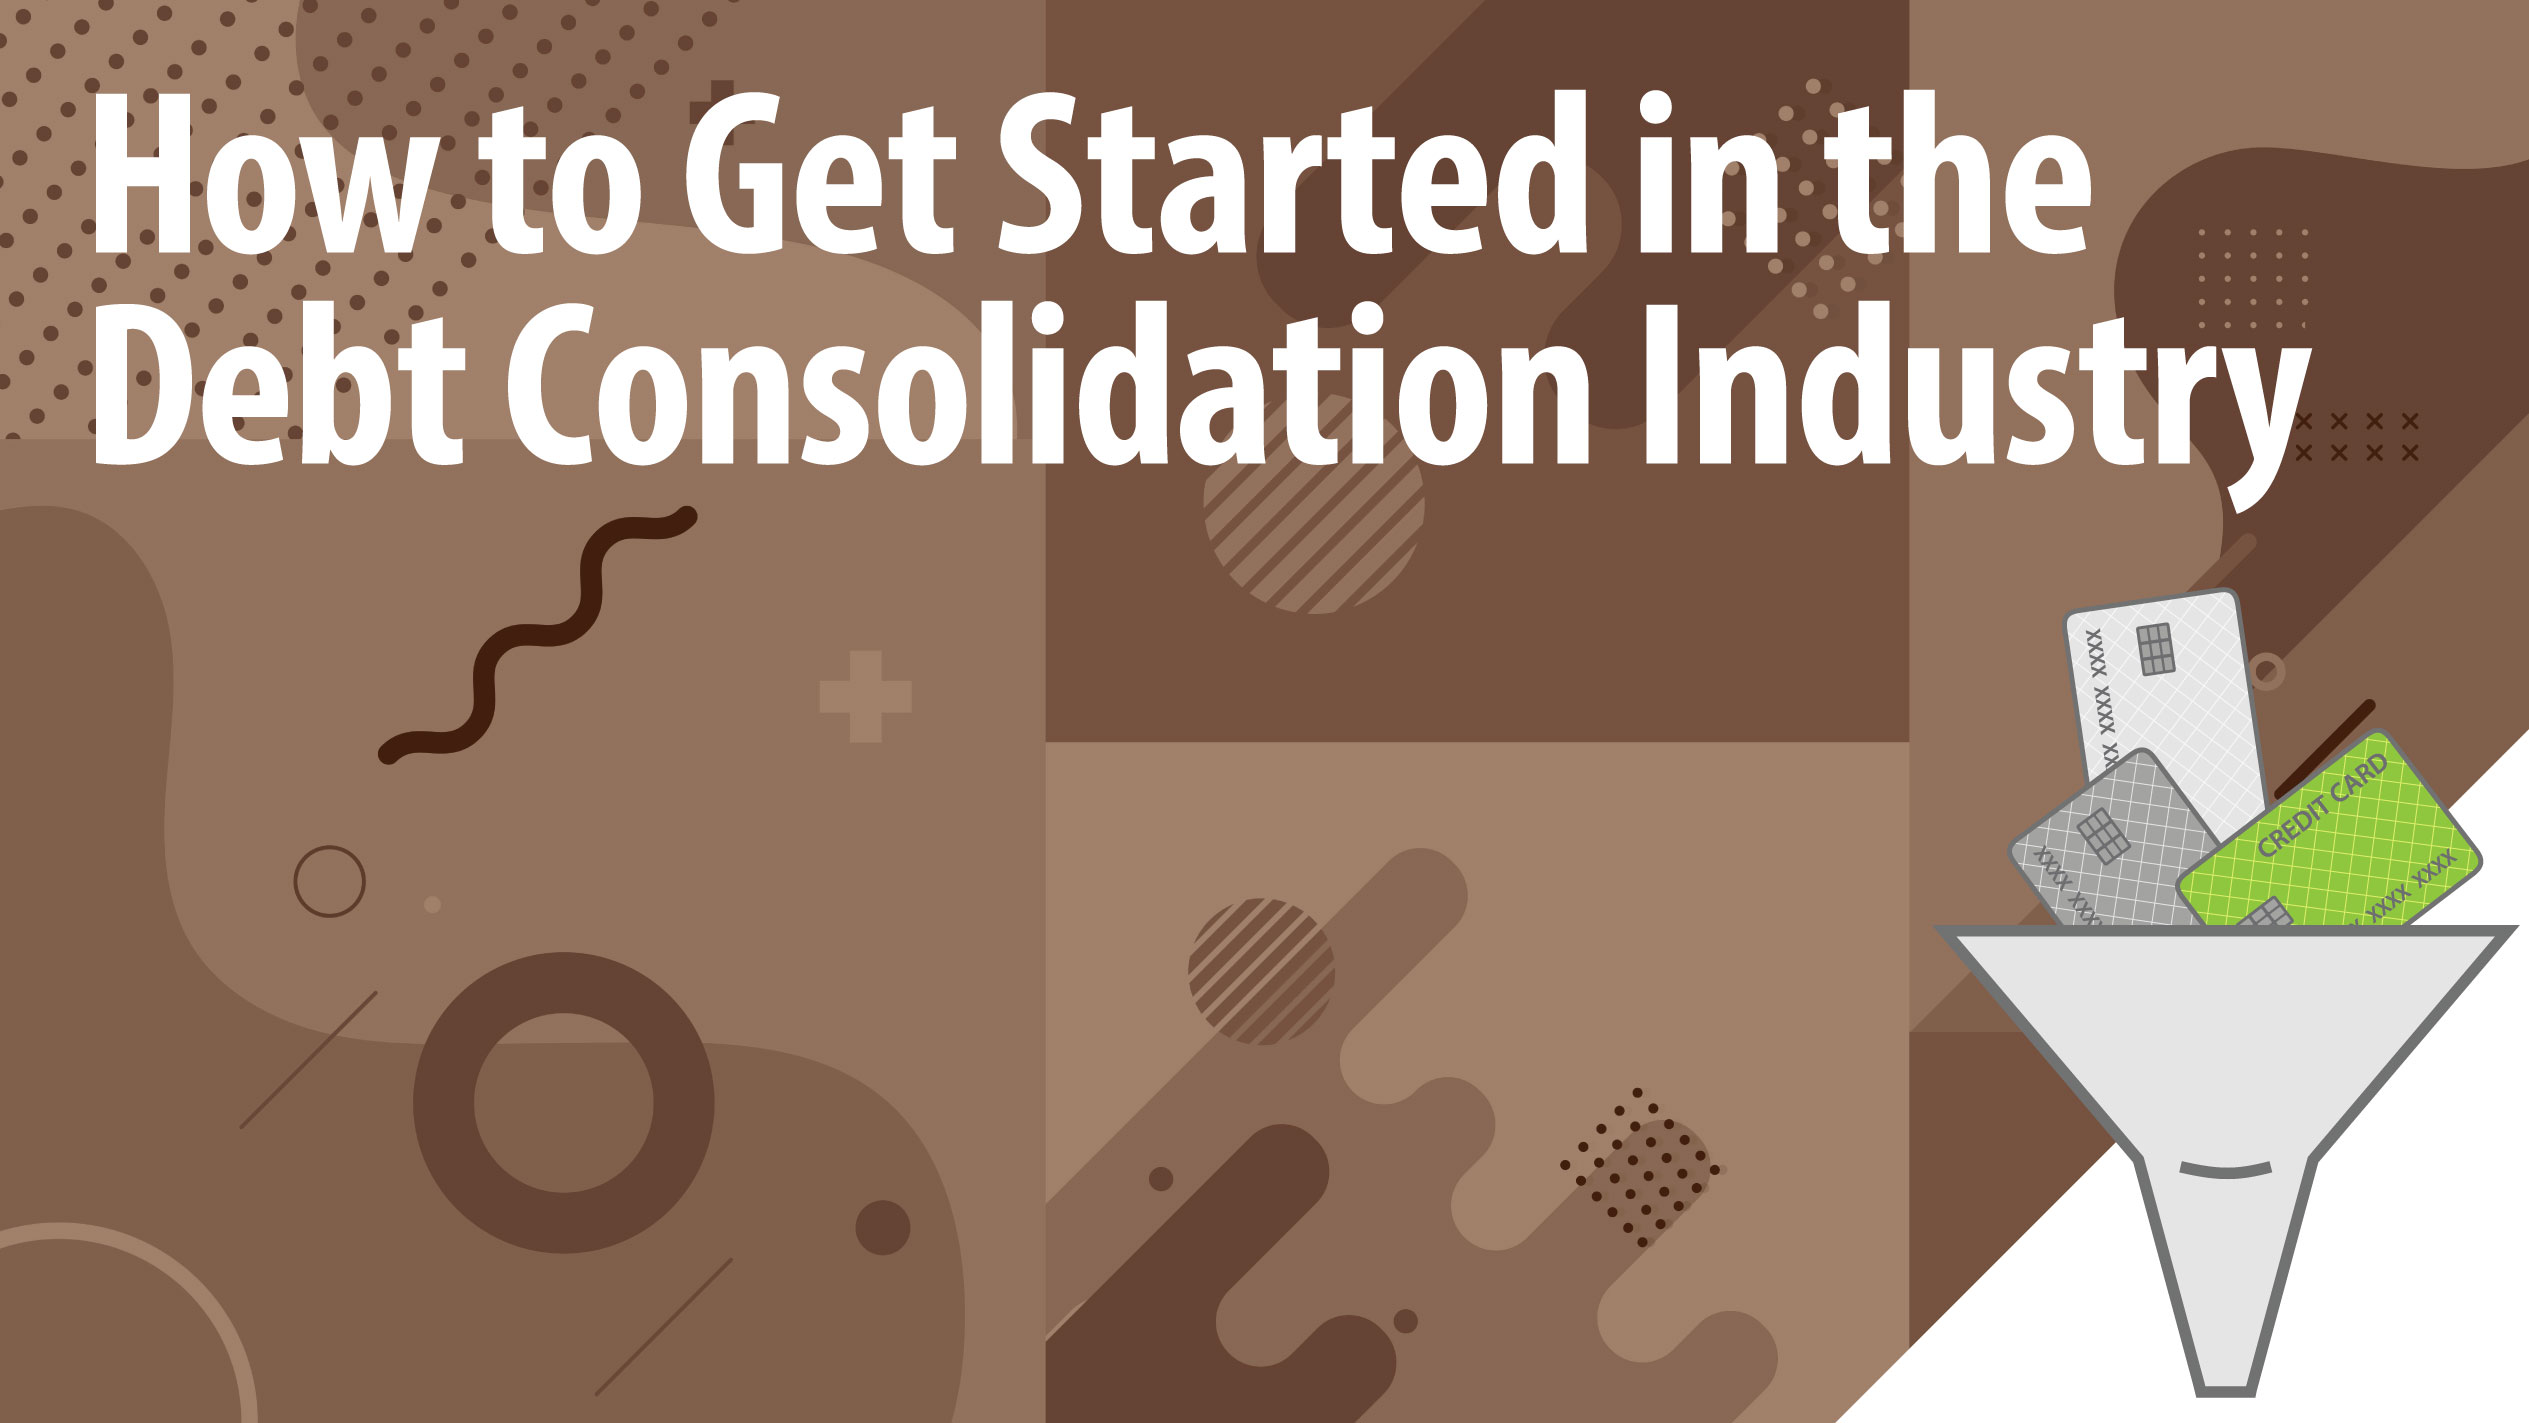 How to Get Started in the Debt Consolidation Industry